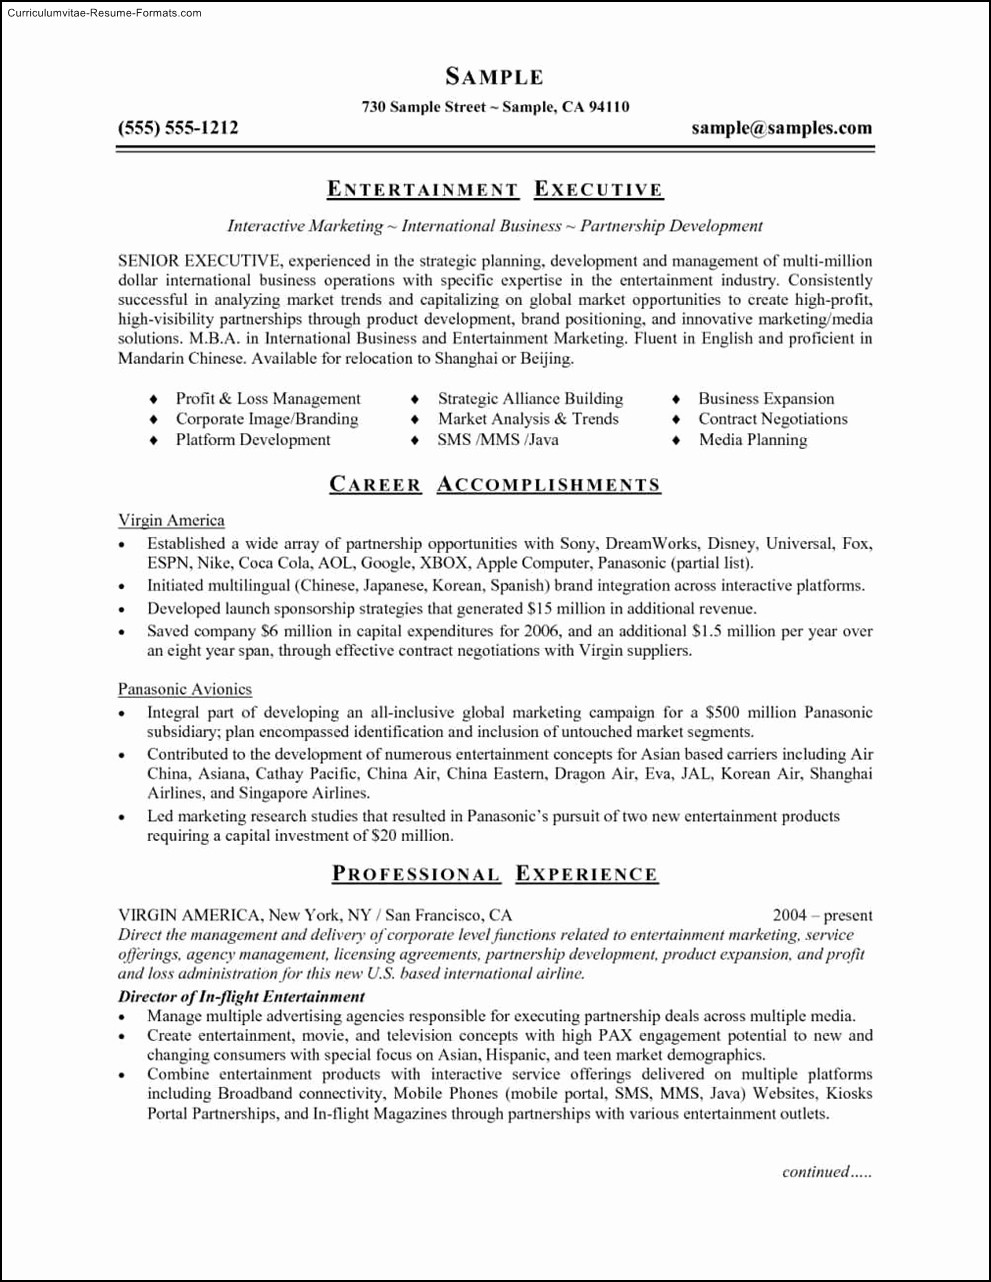 Microsoft Word 2003 Resume Templates Best Of Microsoft Word 2003 Resume Template Free Download Free